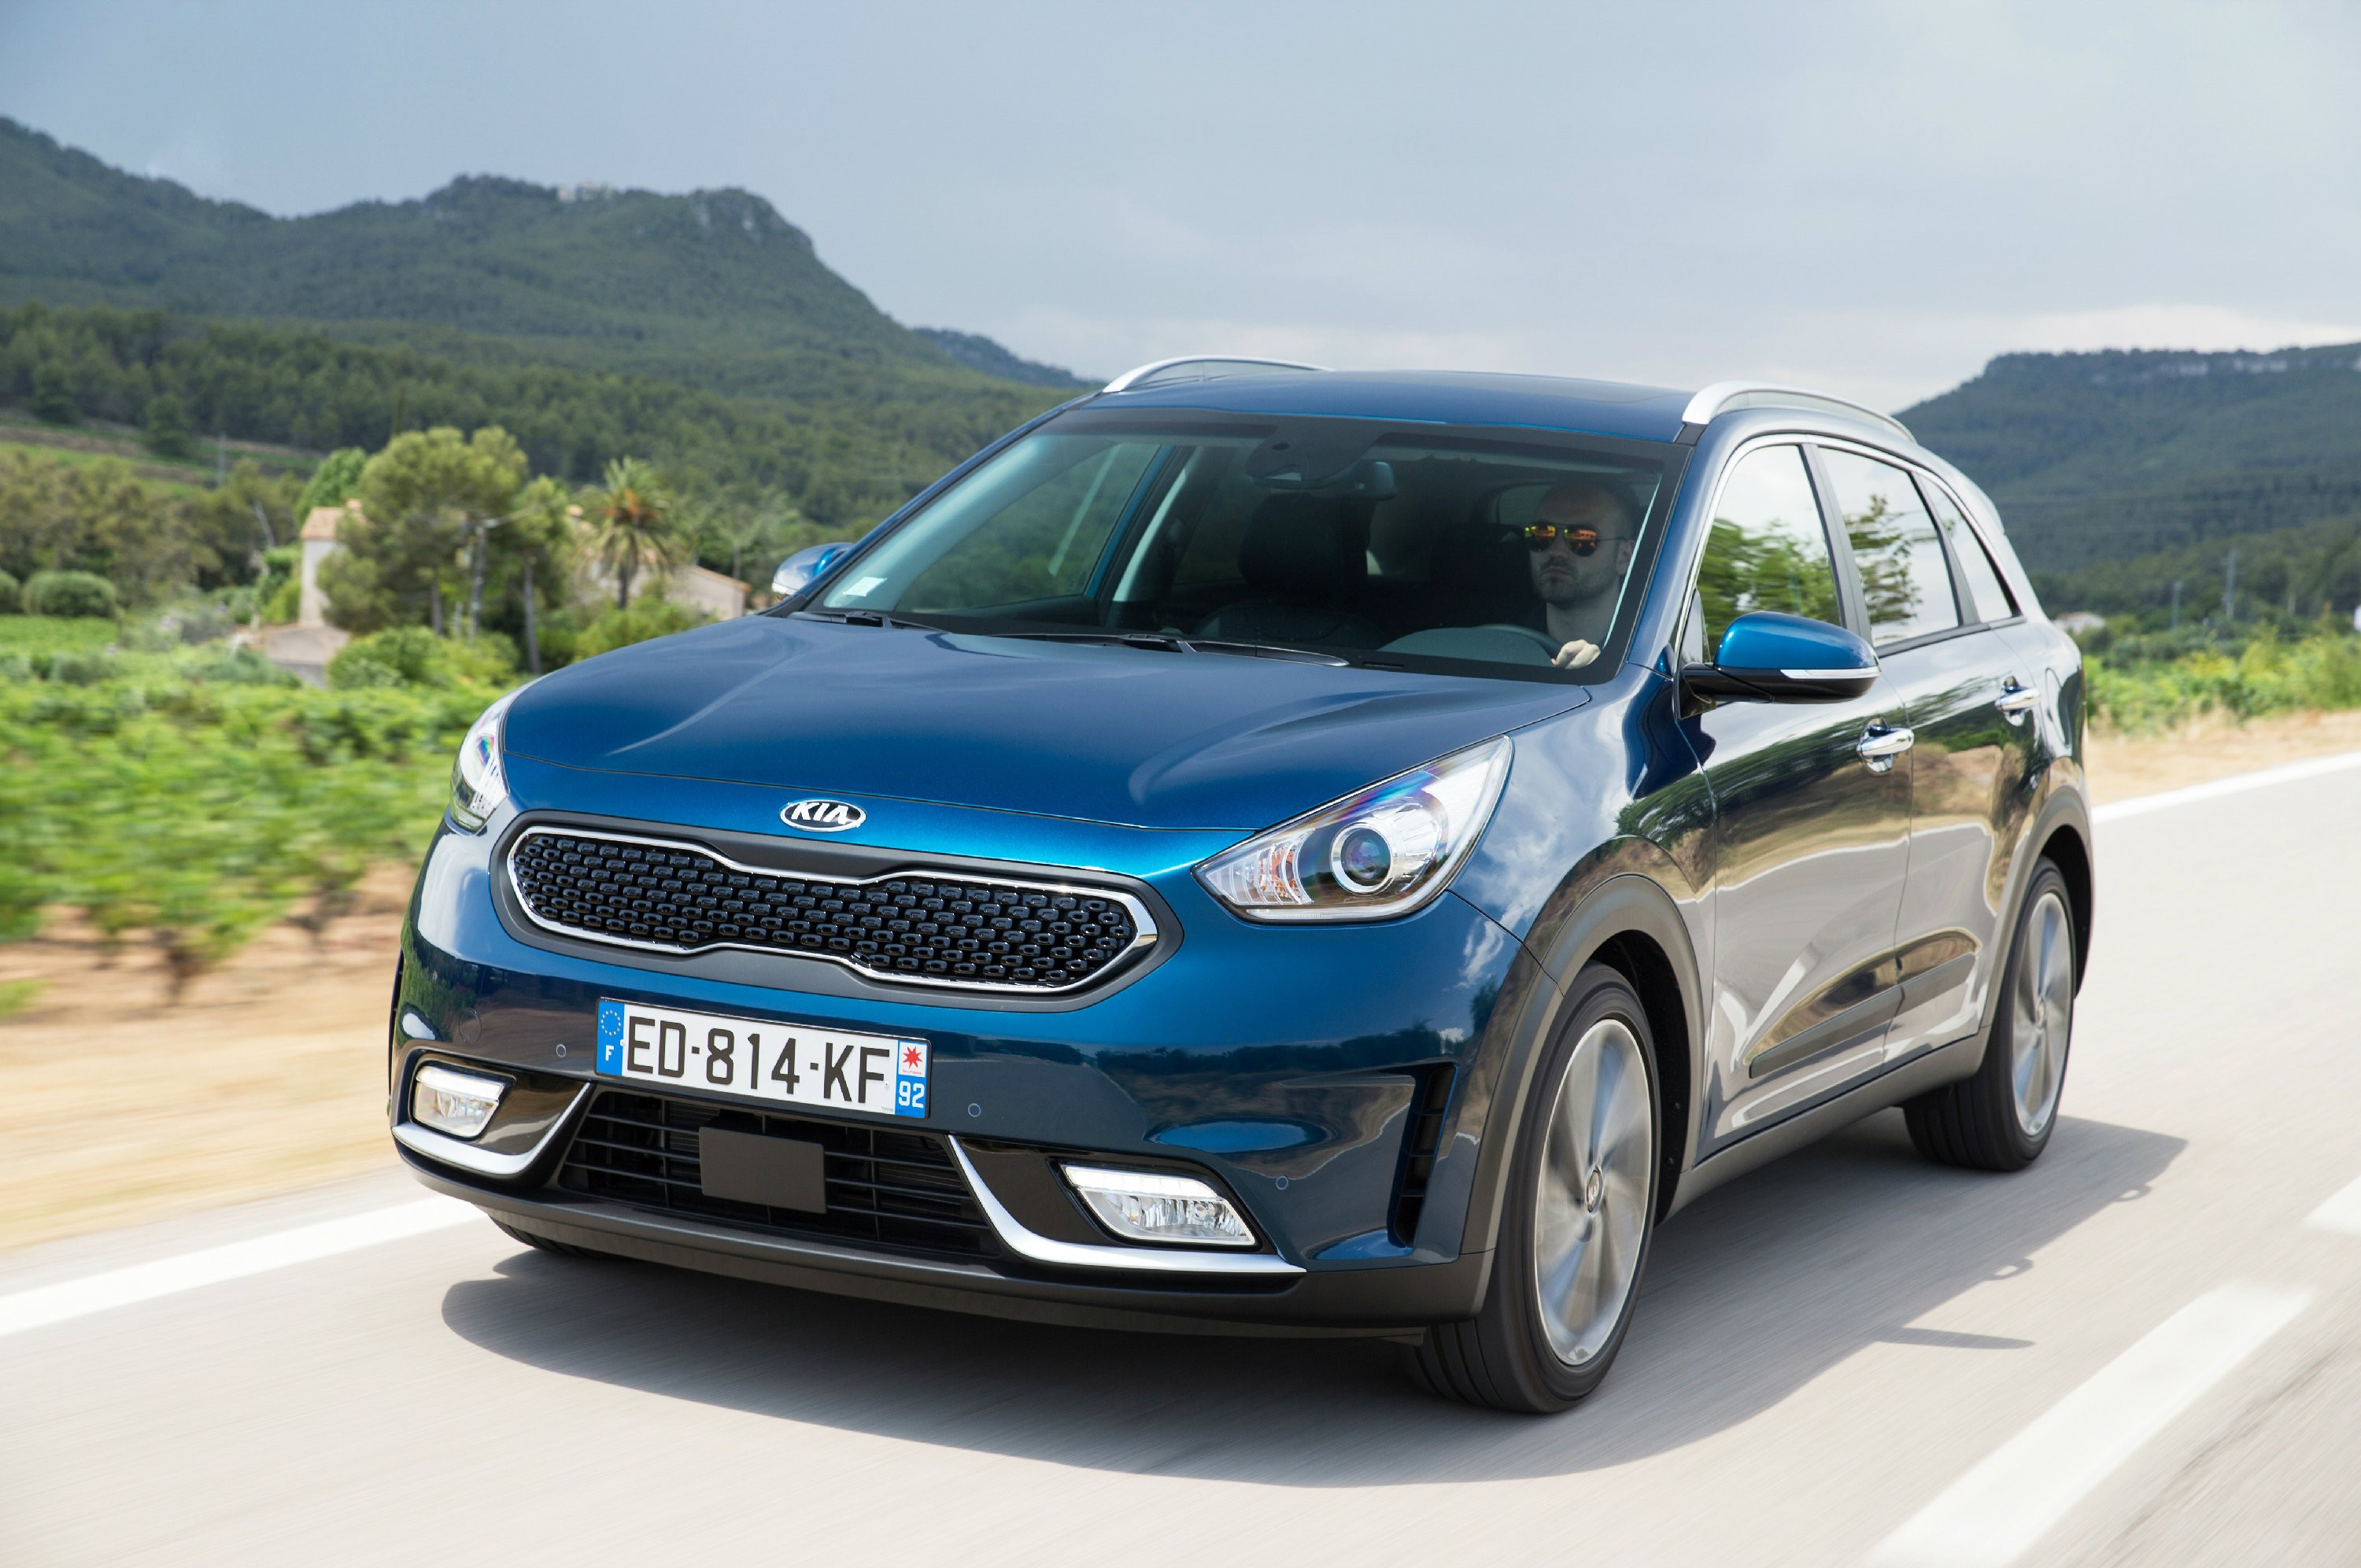 2017 Kia Niro Priced in Europe - autoevolution